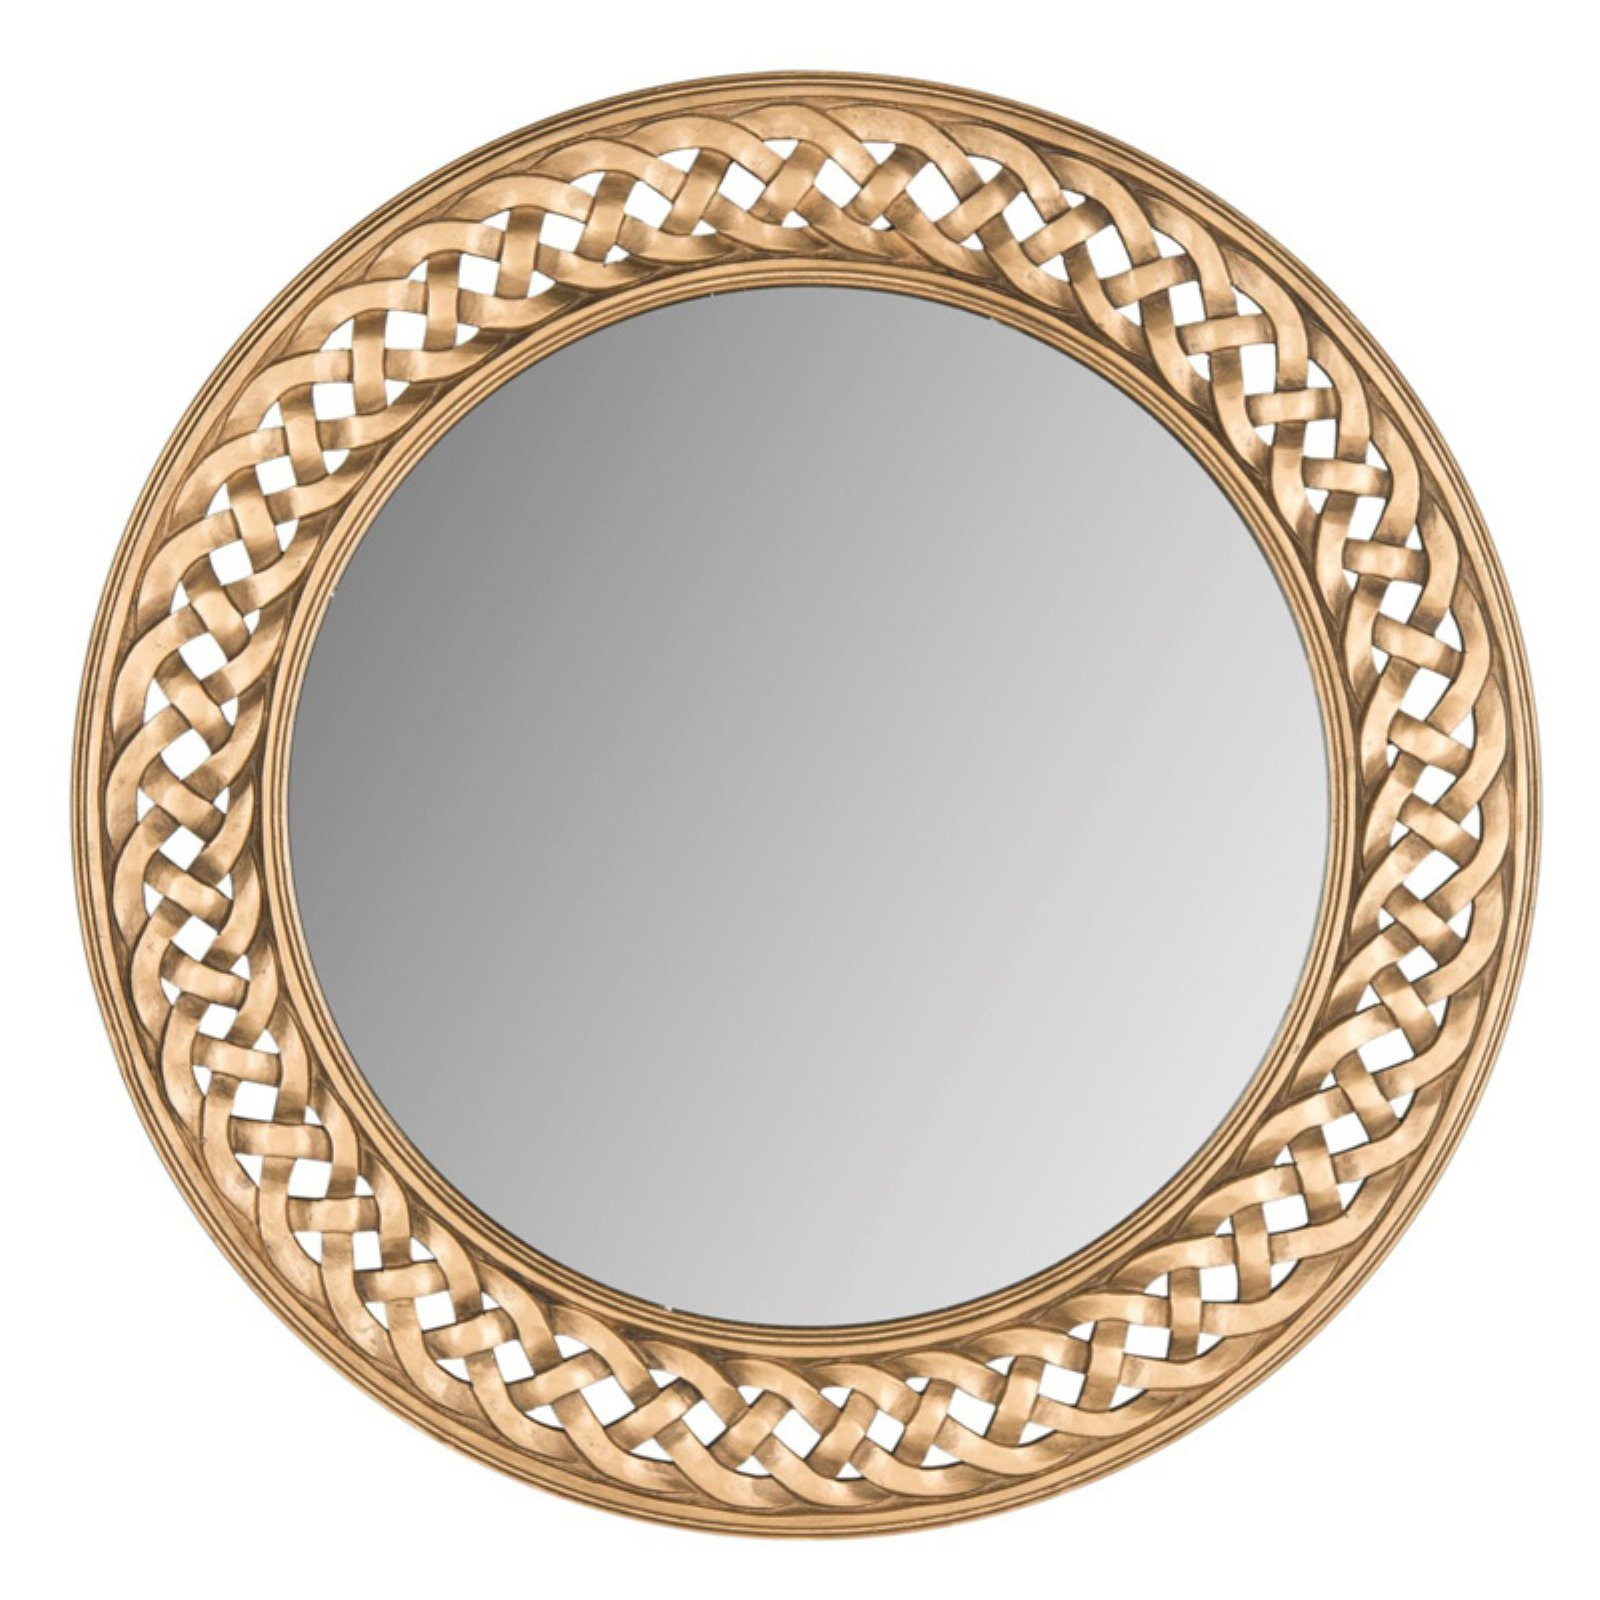 Safavieh Braided Chain Wall Mirror Gold | Products In 2019 With Alissa Traditional Wall Mirrors (View 3 of 20)